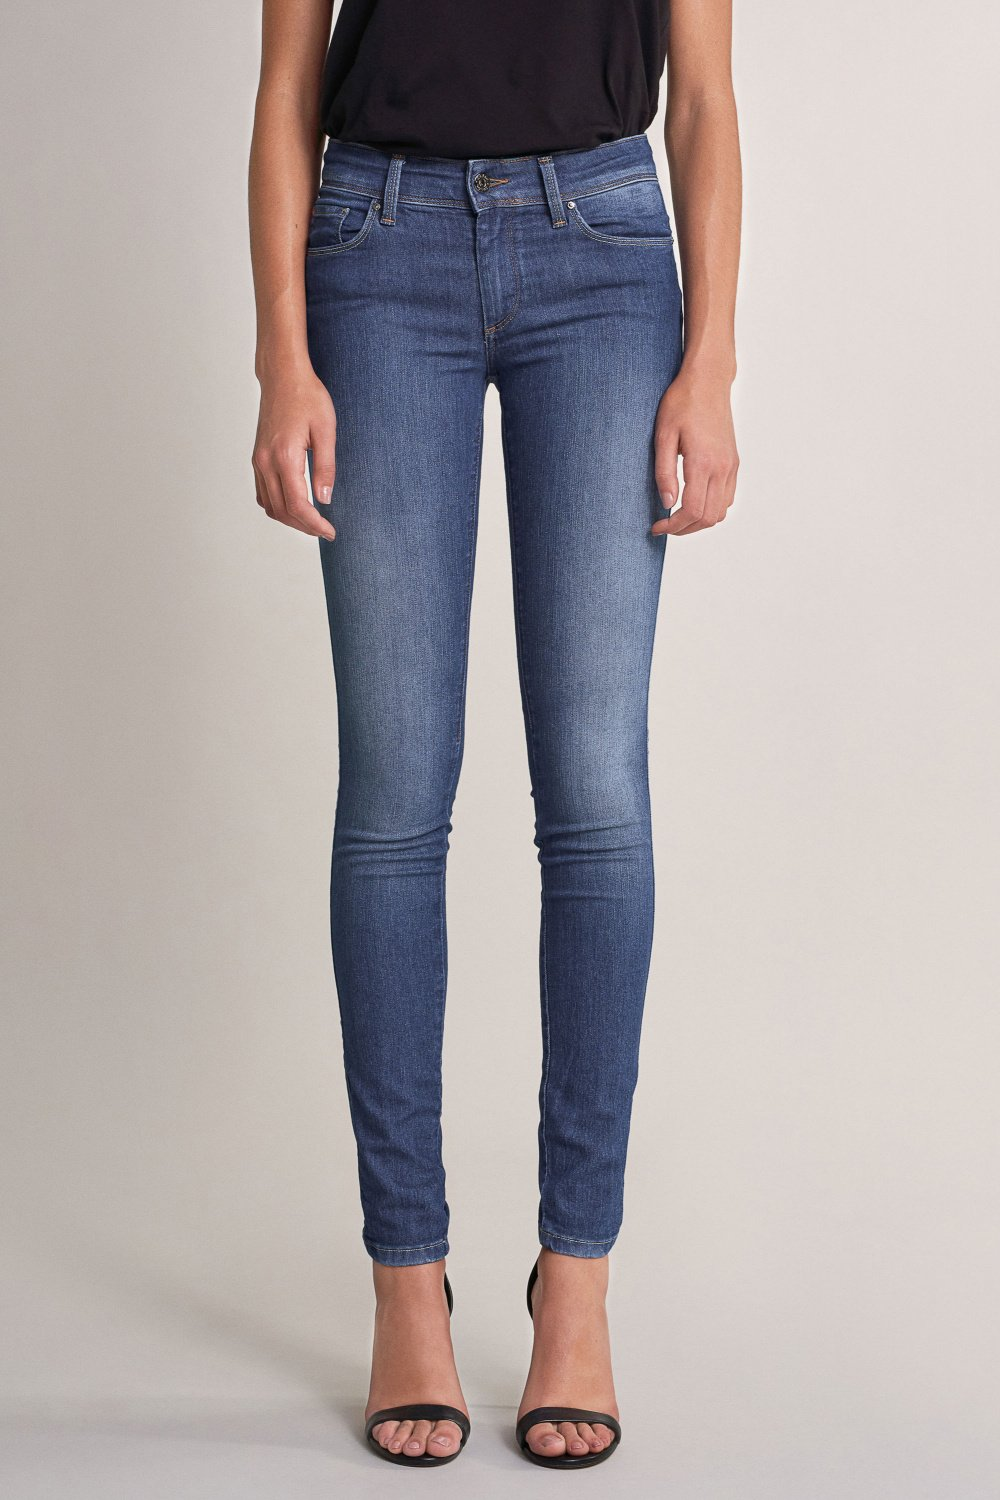 Skinny Push Up Wonder jeans - Salsa